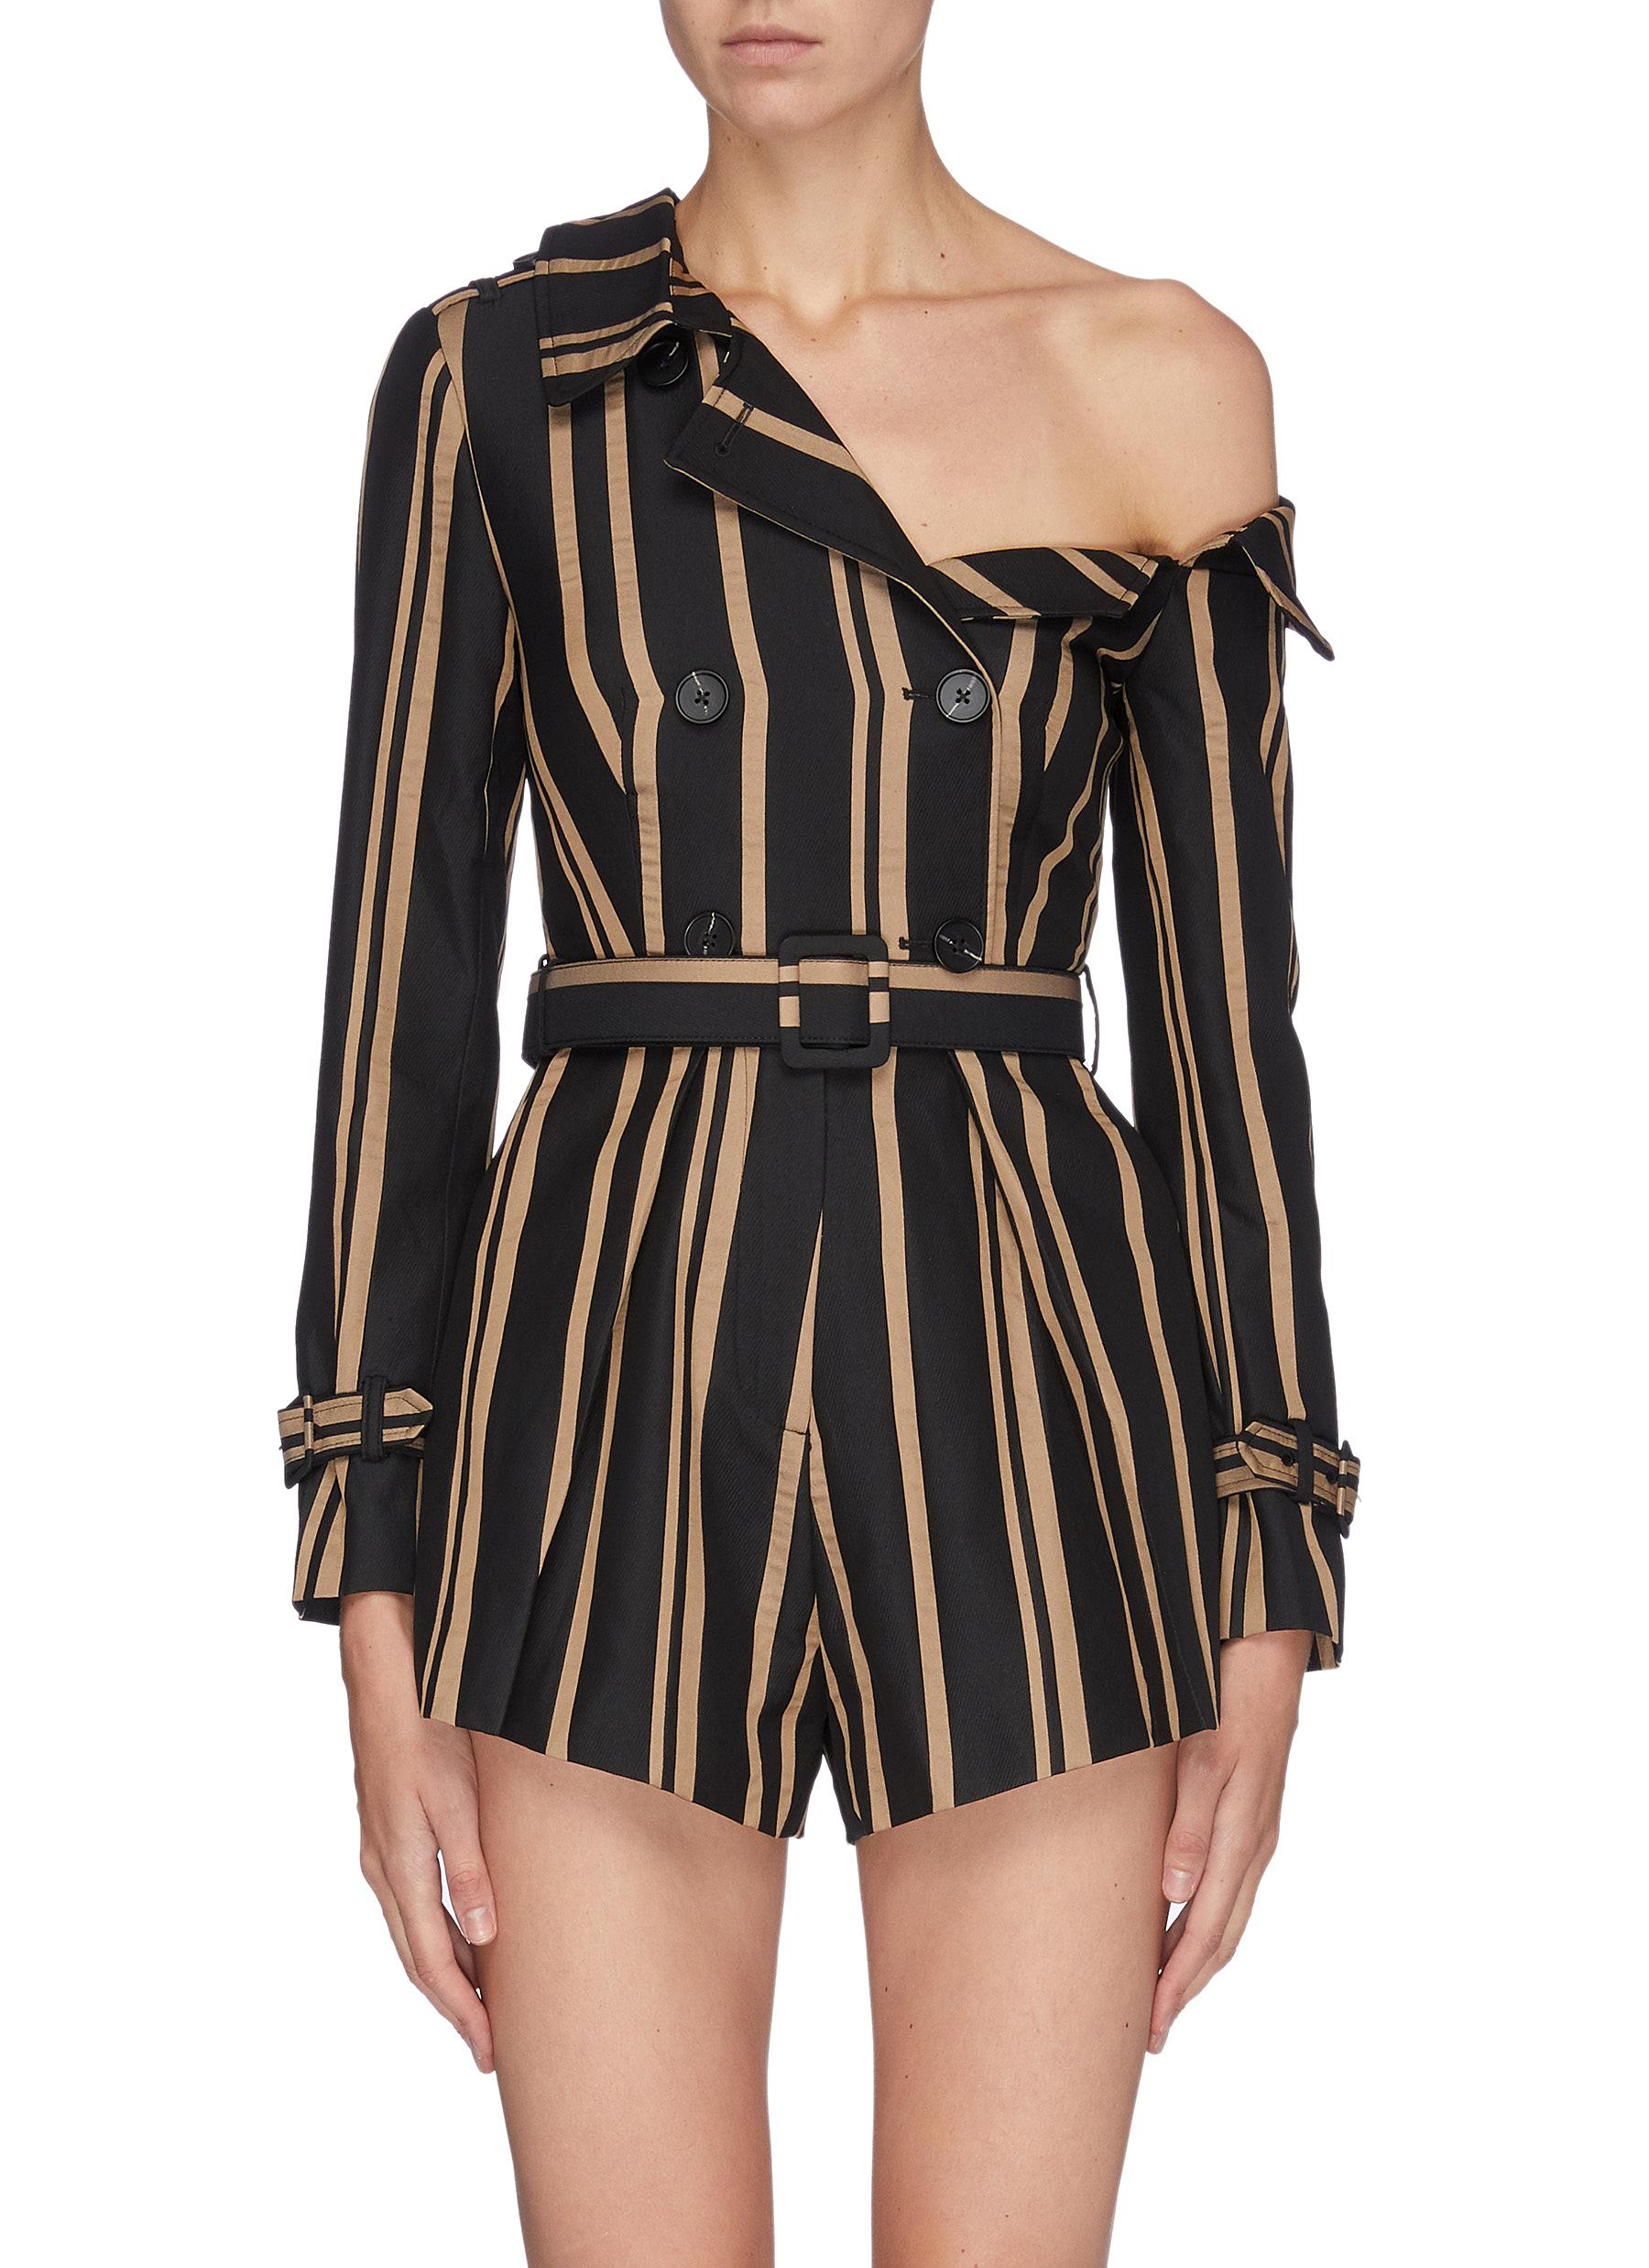 Belted stripe one-shoulder rompers by Self-Portrait